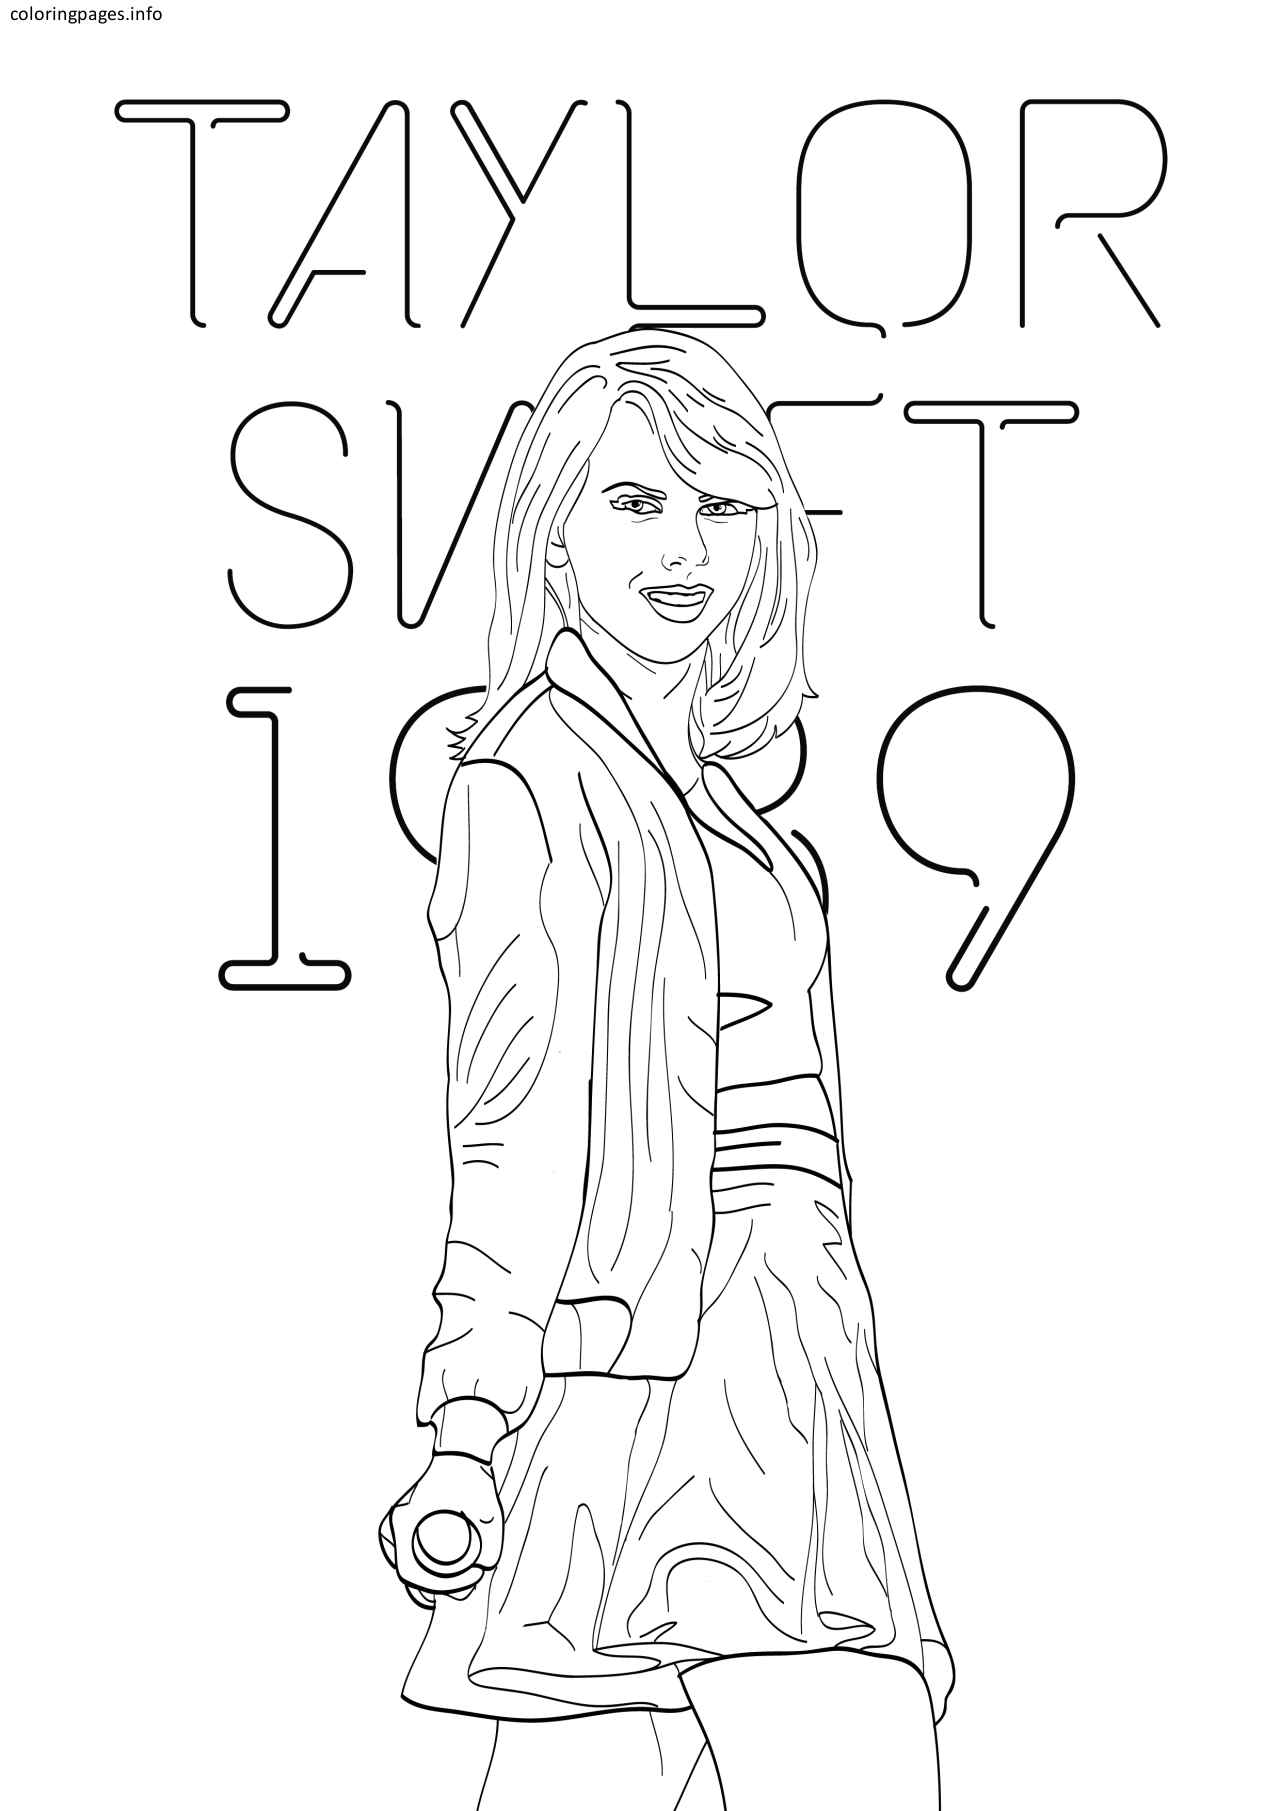 Taylor Swift Coloring Pages 1989 Taylor Swift Coloring Pages 1989 Coloringpage Hello Kitty Colouring Pages Unique Coloring Pages Coloring Pages Inspirational